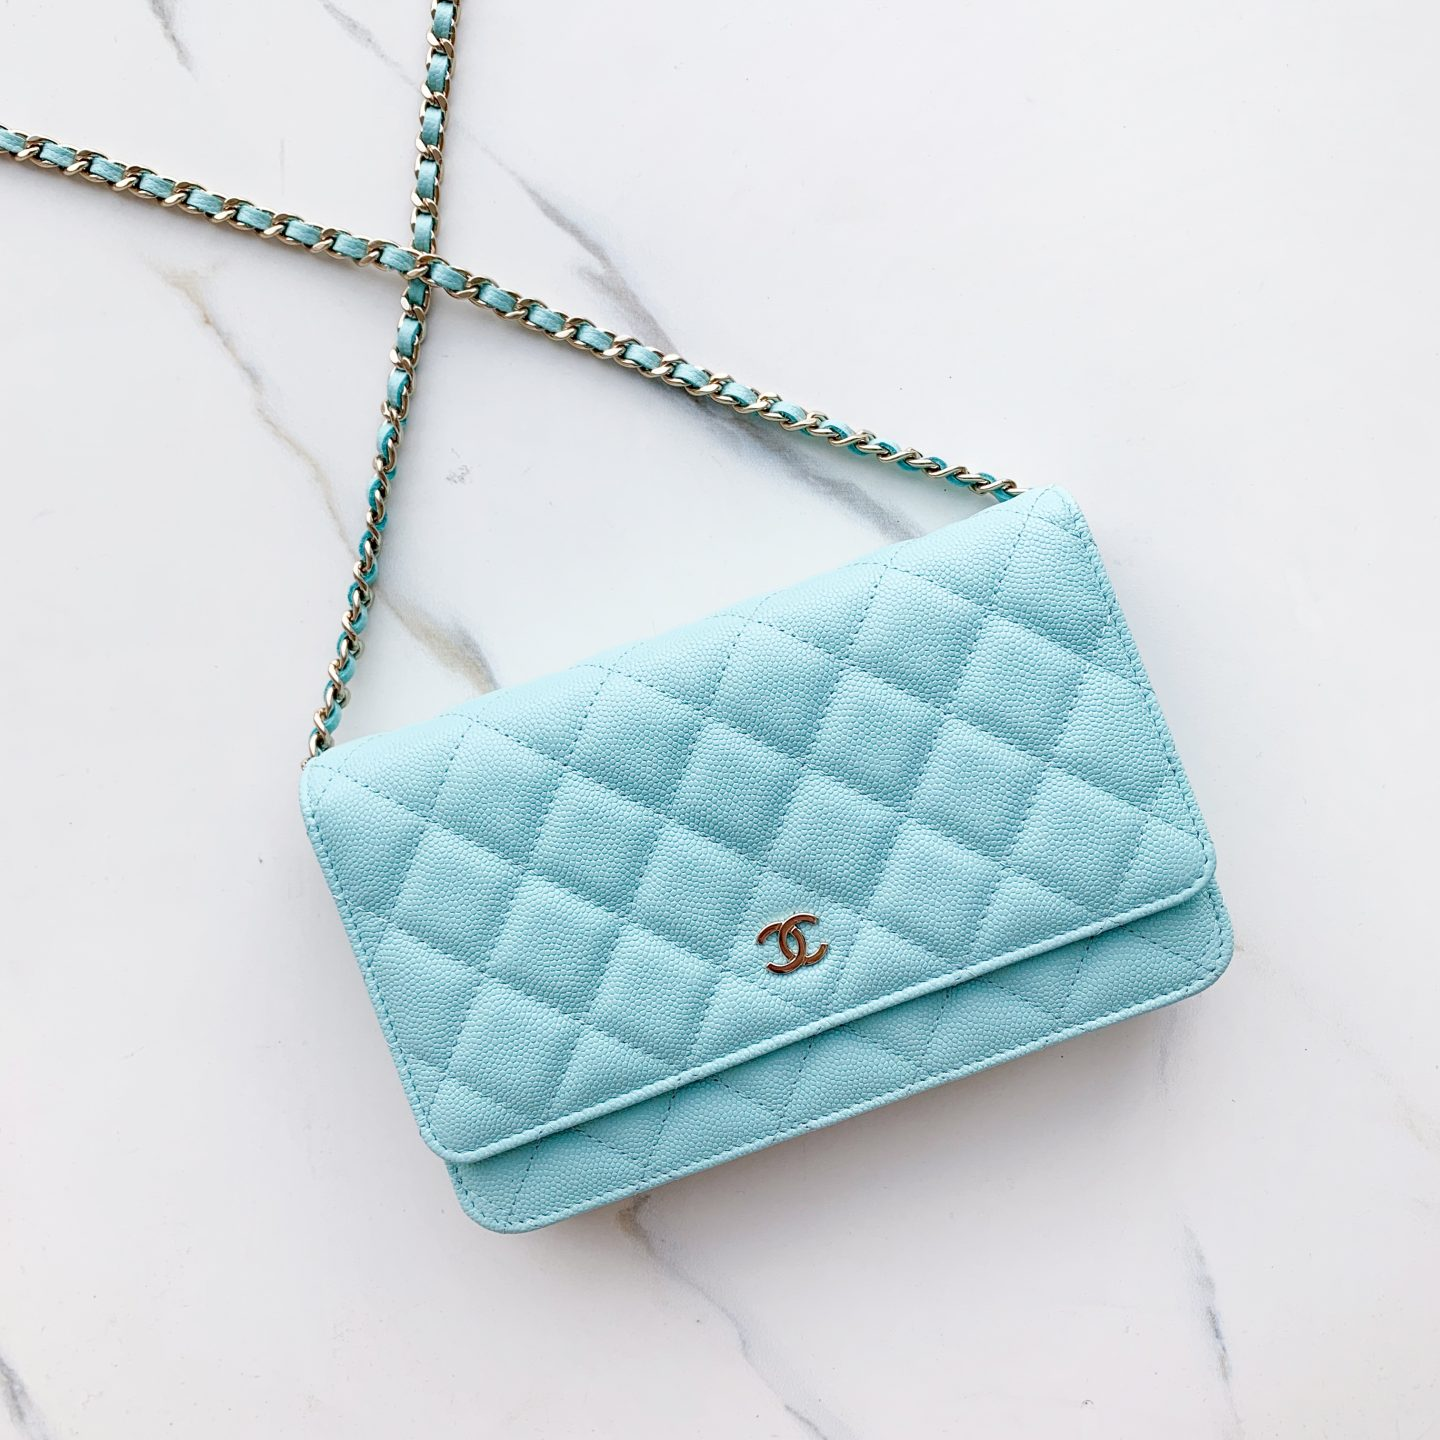 f897c1df9ce7 The Best First Chanel Bag  - Chase Amie